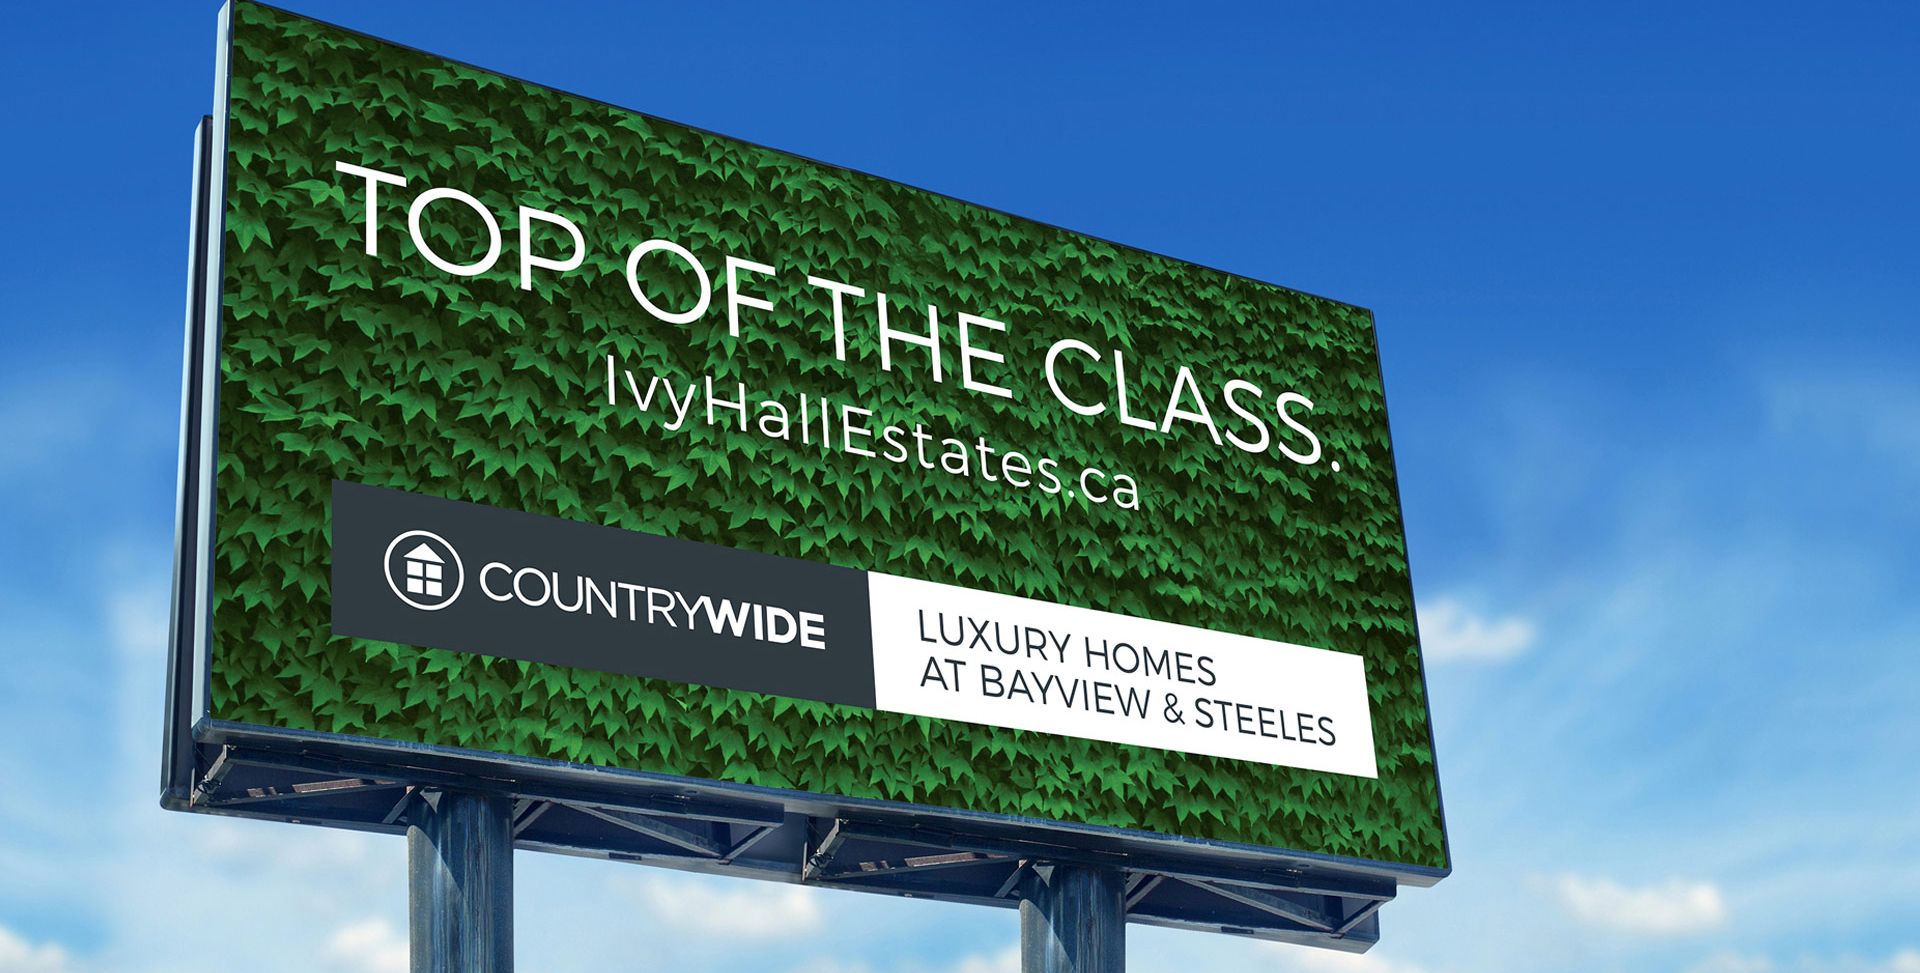 Ivy Hall Estates by CountryWide Homes